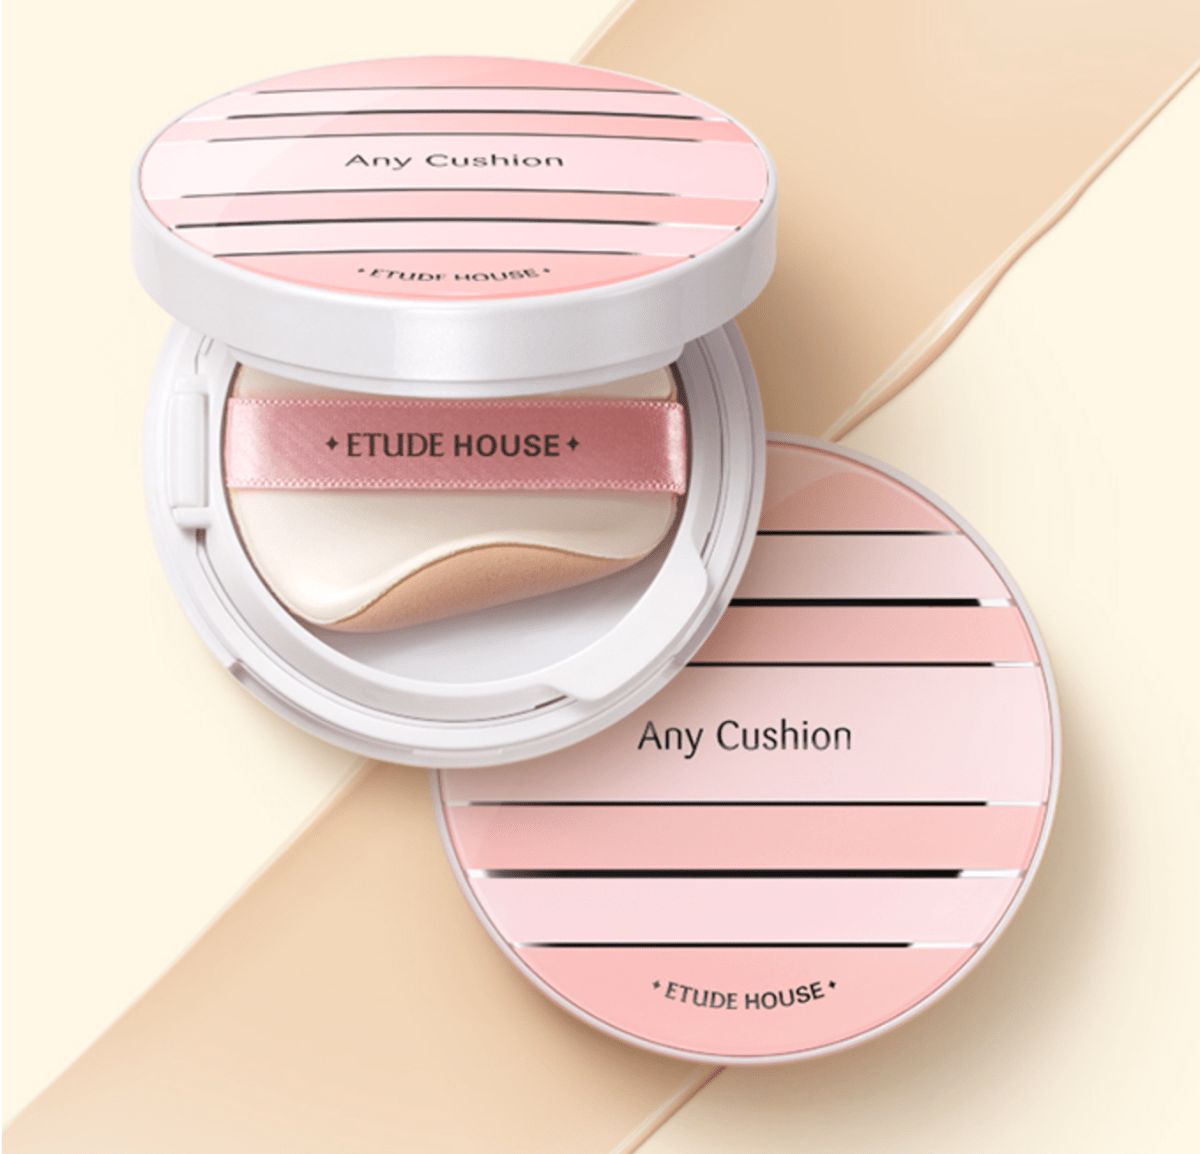 Etude House - Any Cushion All Day Perfect Review